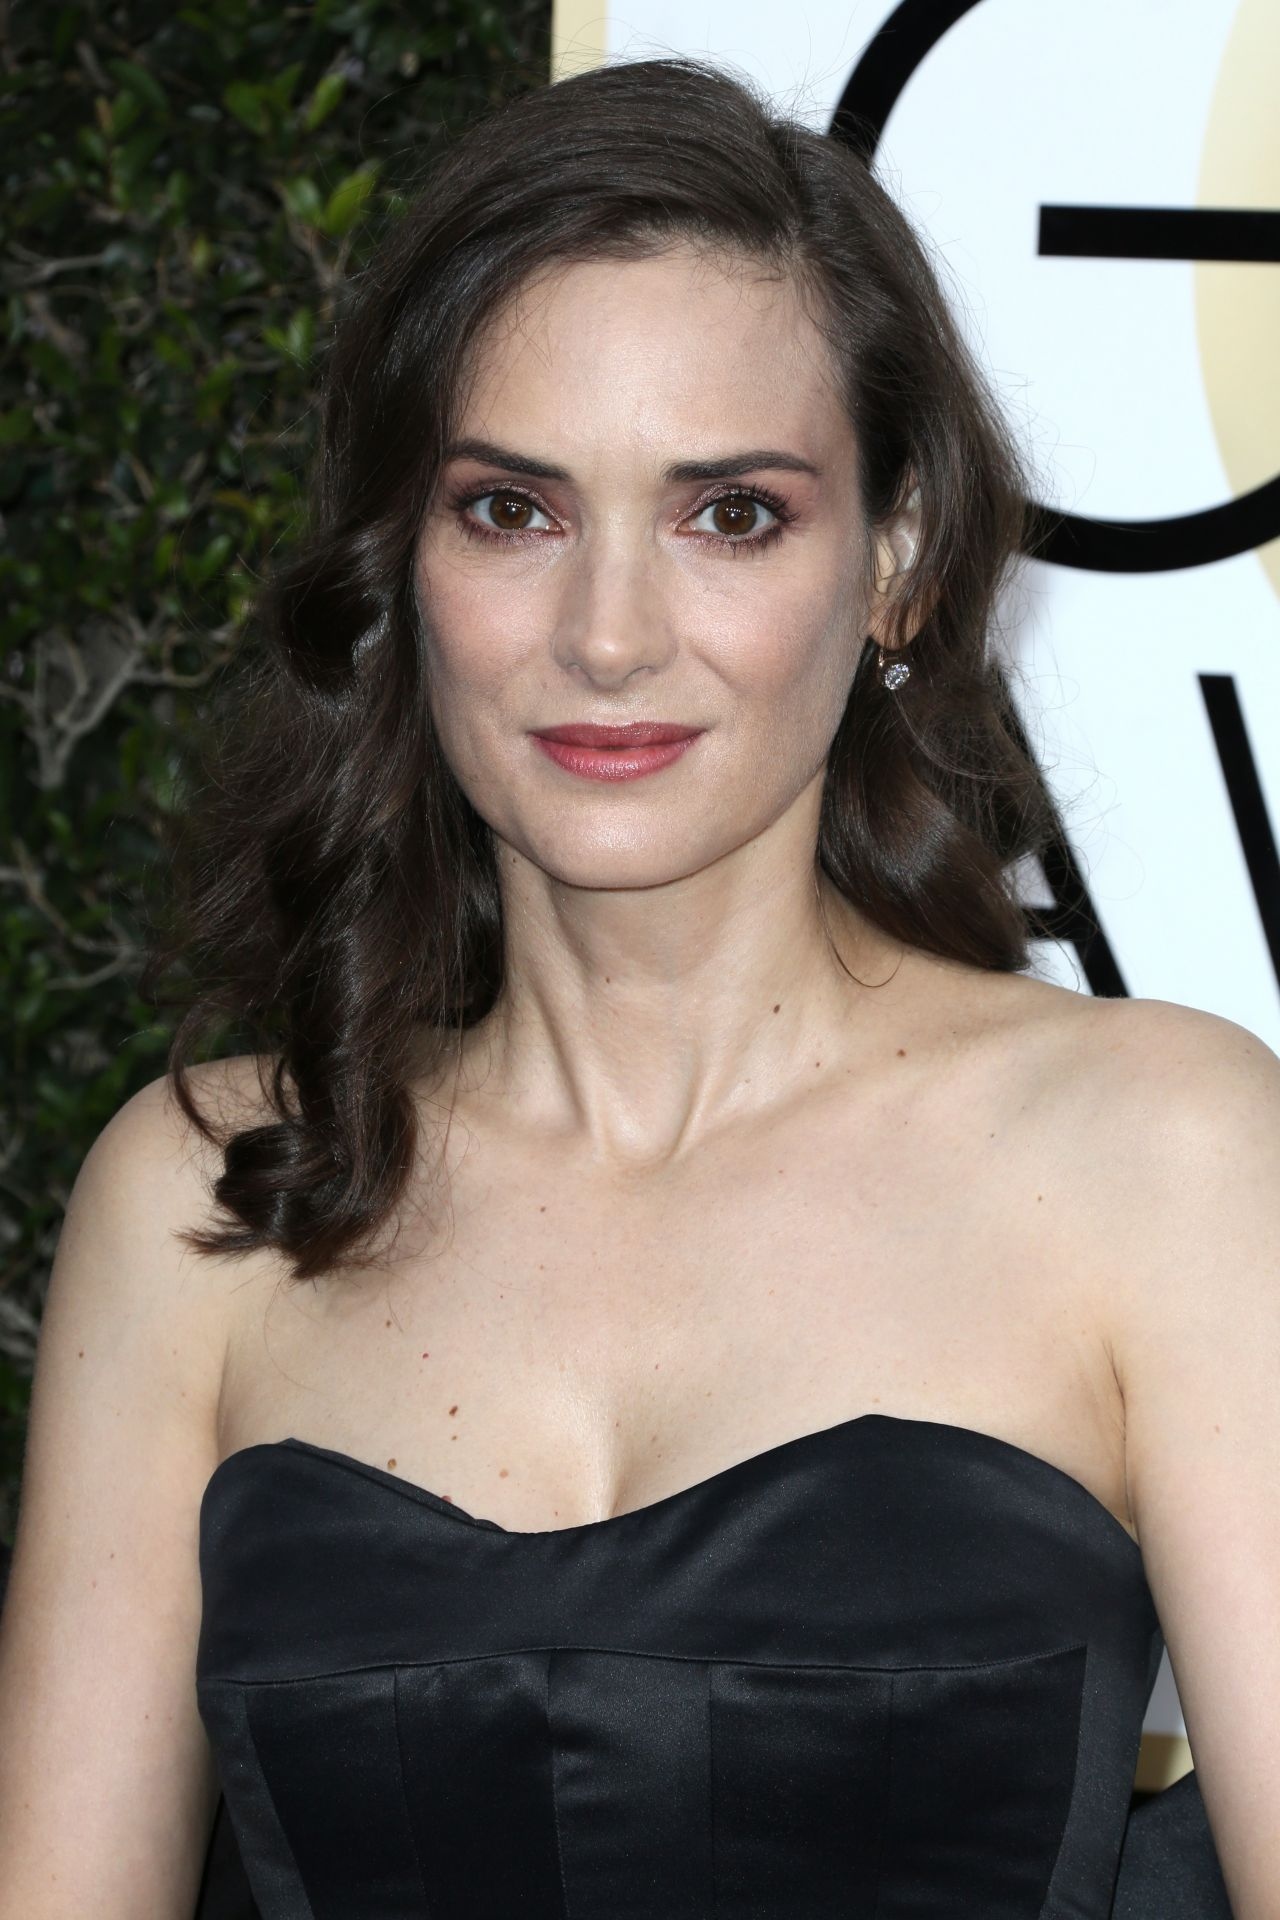 winona ryder golden globe awards in beverly hills 01 08 2017 1 Do You Remember Stacy Sheridan From TJ Hooker? Check Her Out Now!